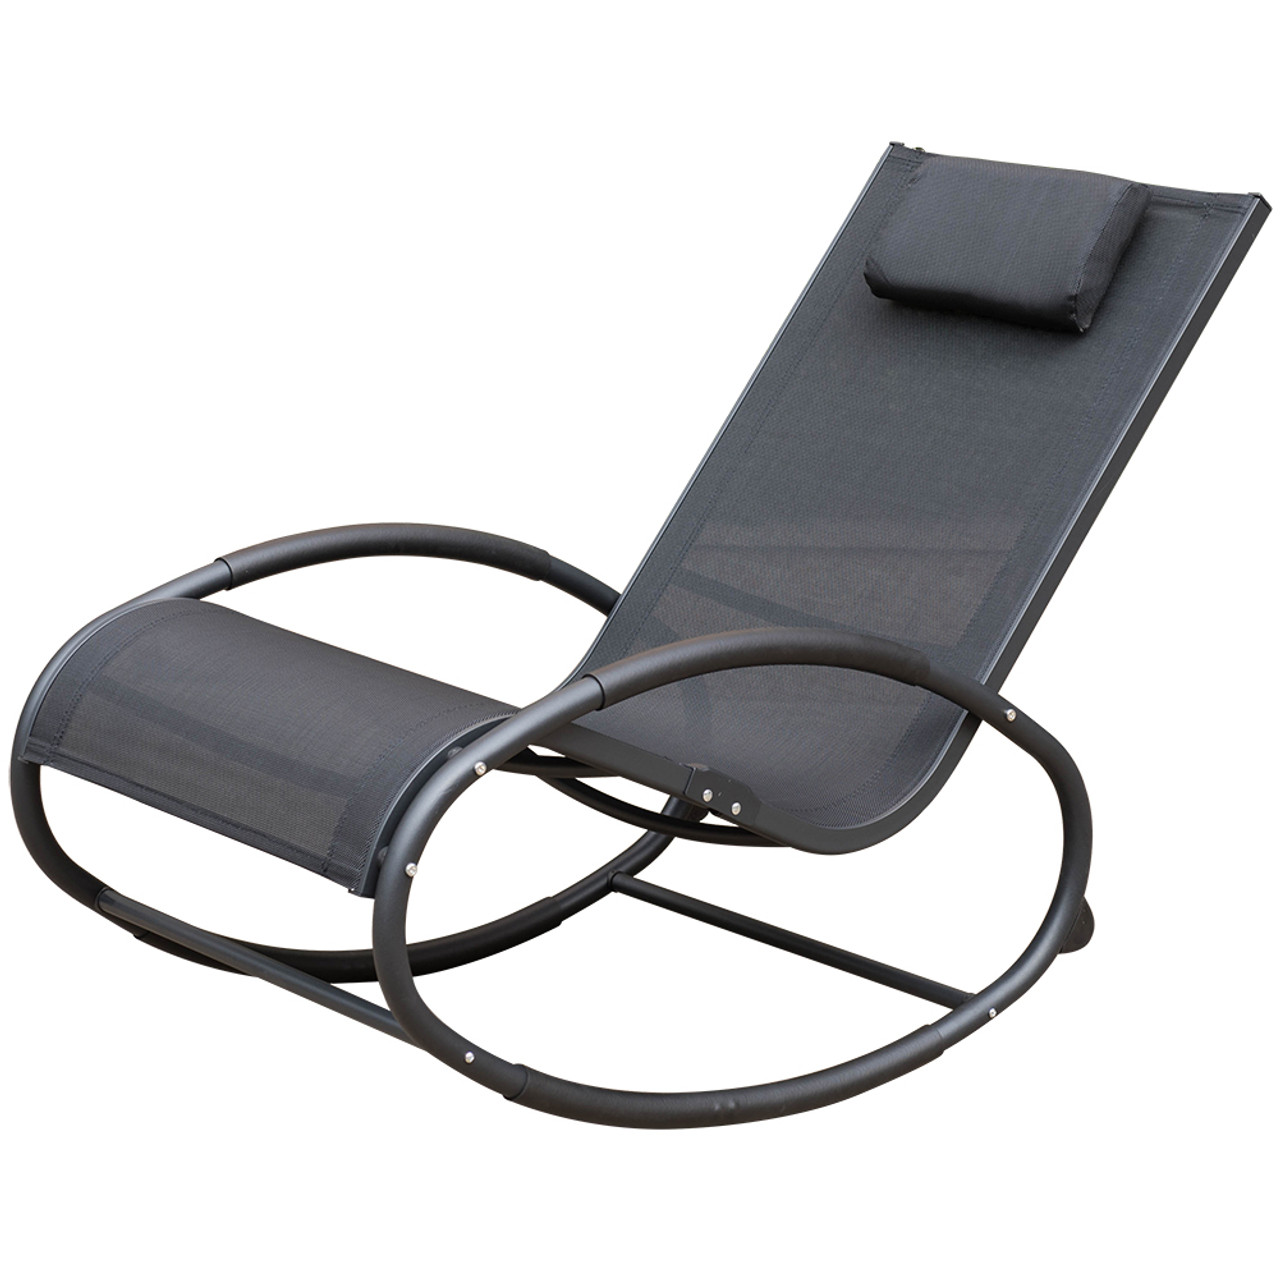 Zero Gravity Outdoor Lounge Chair Patio Garden Pool Zero Gravity Orbital Rocking Lounge Chair With Aluninum Frame And Pillow Capacity 250 Lbs Black